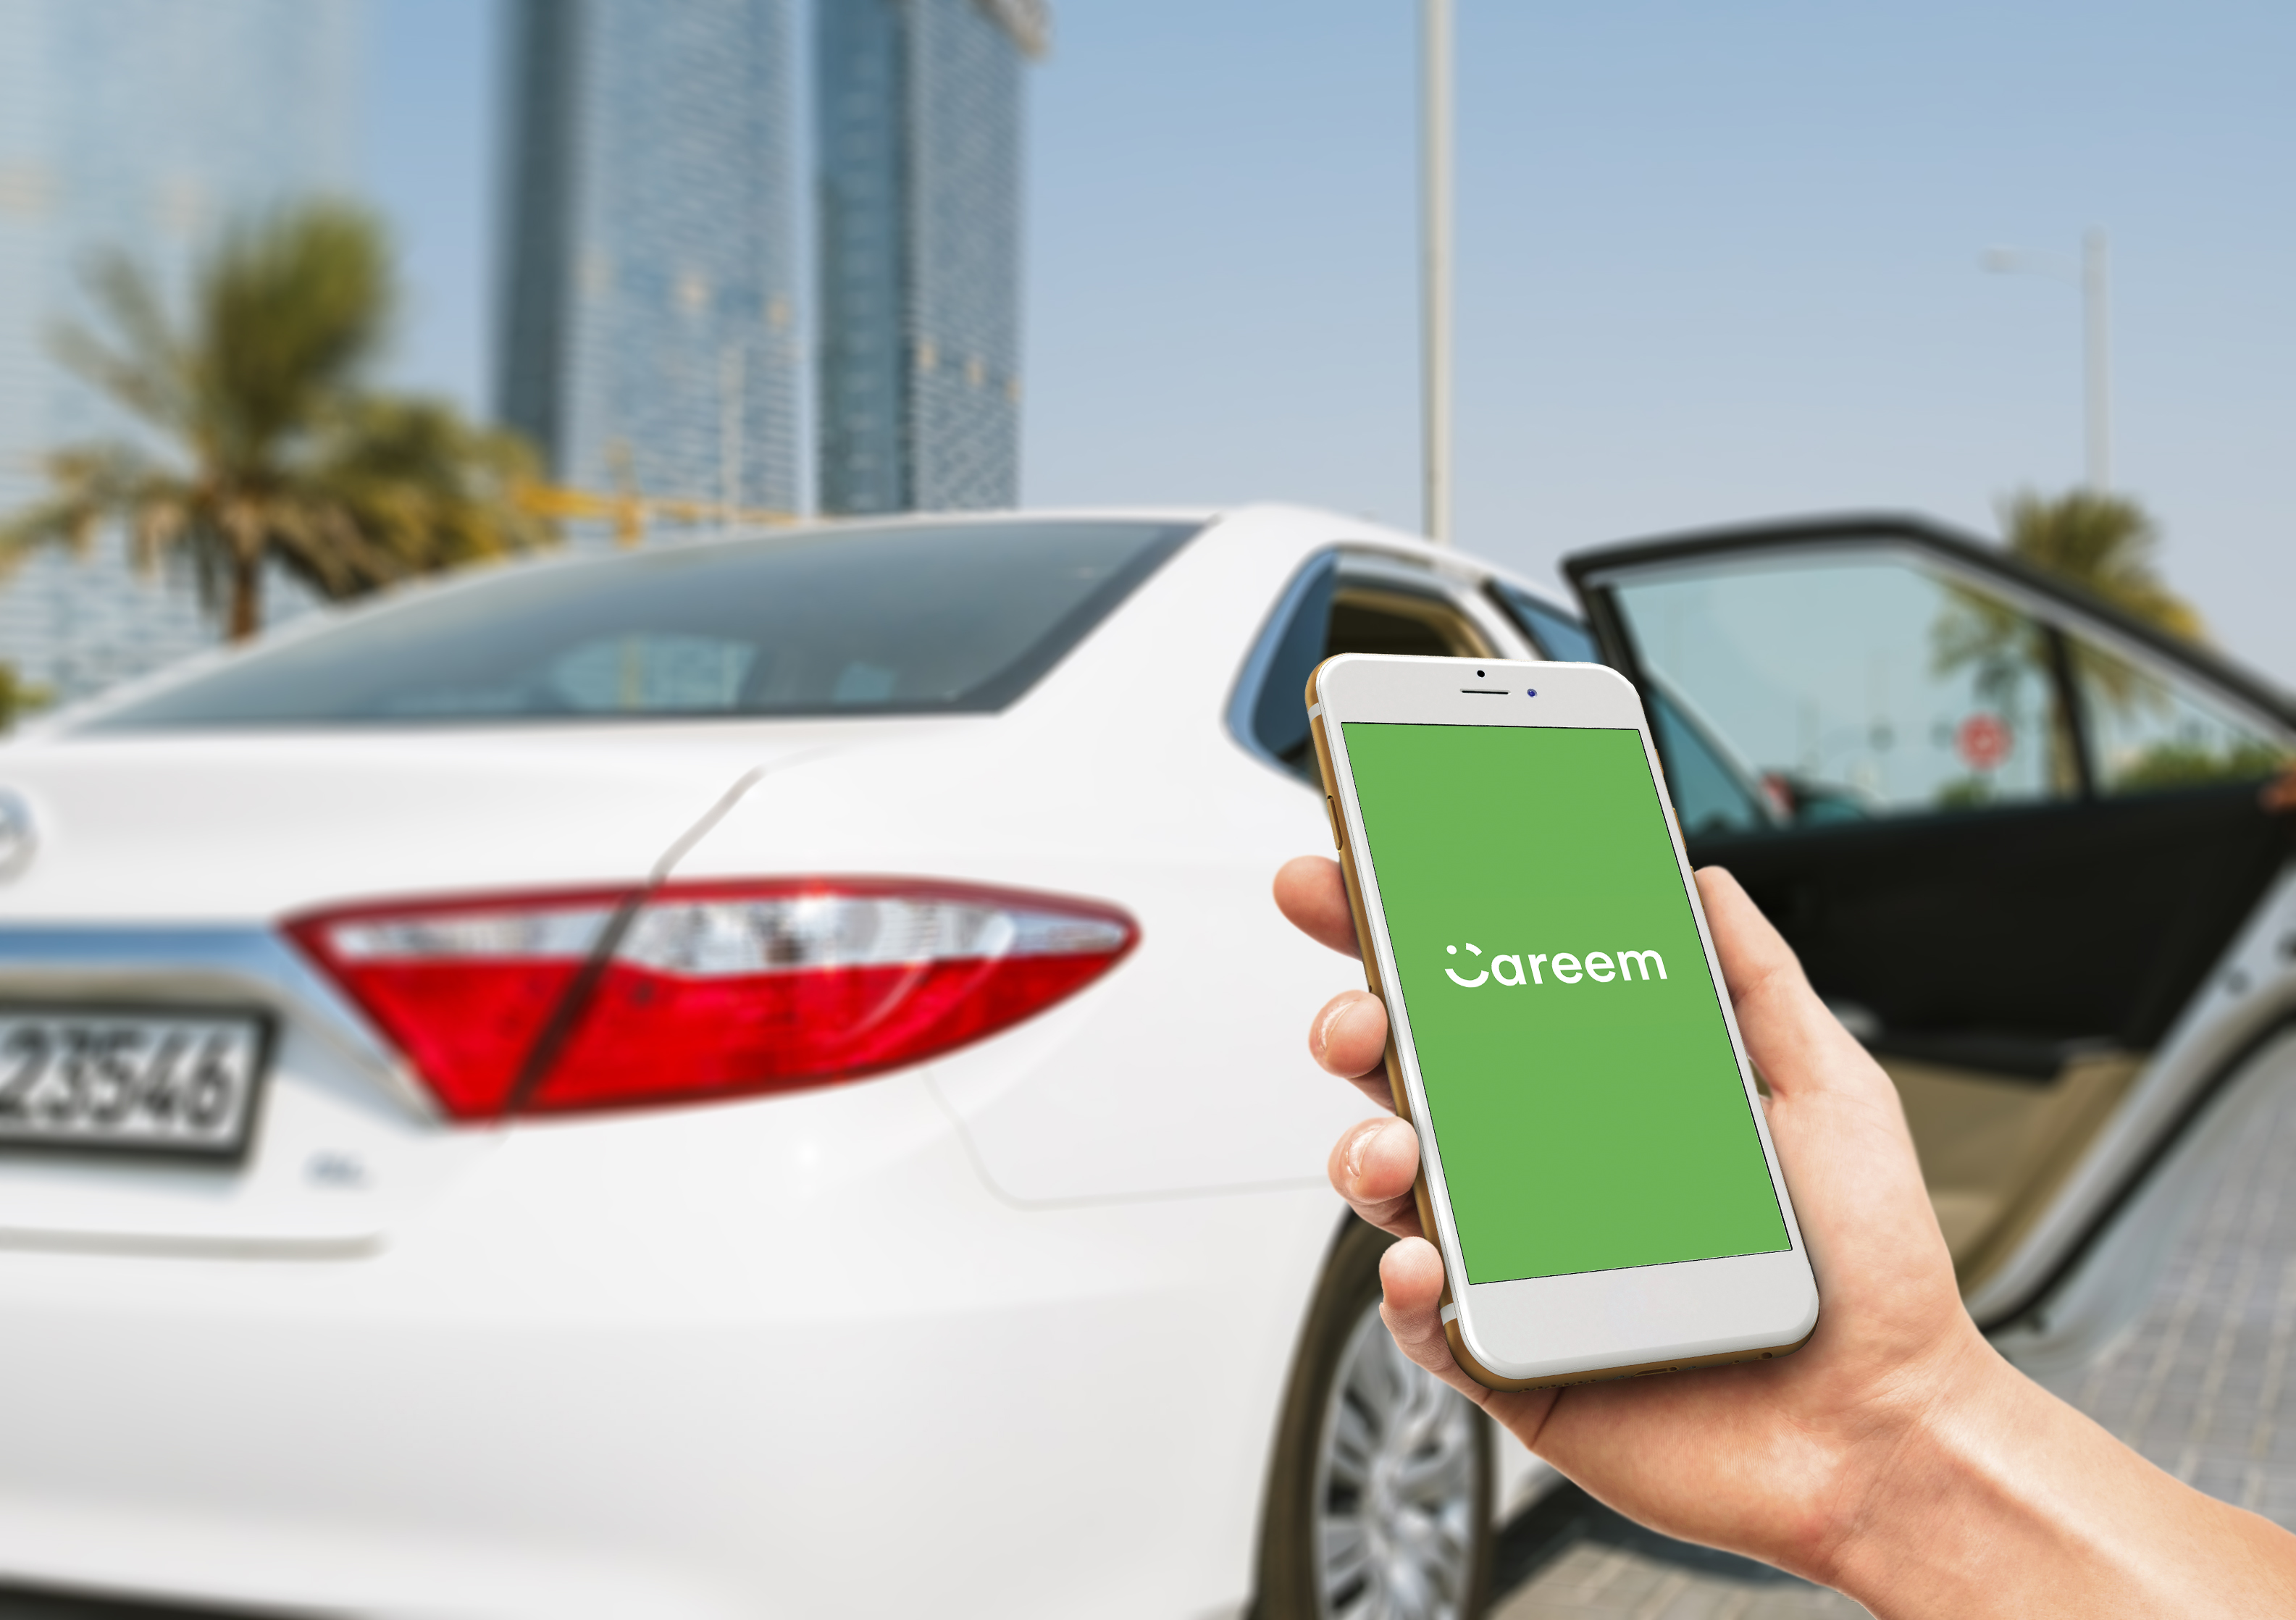 Careem hit by cyber attack in January